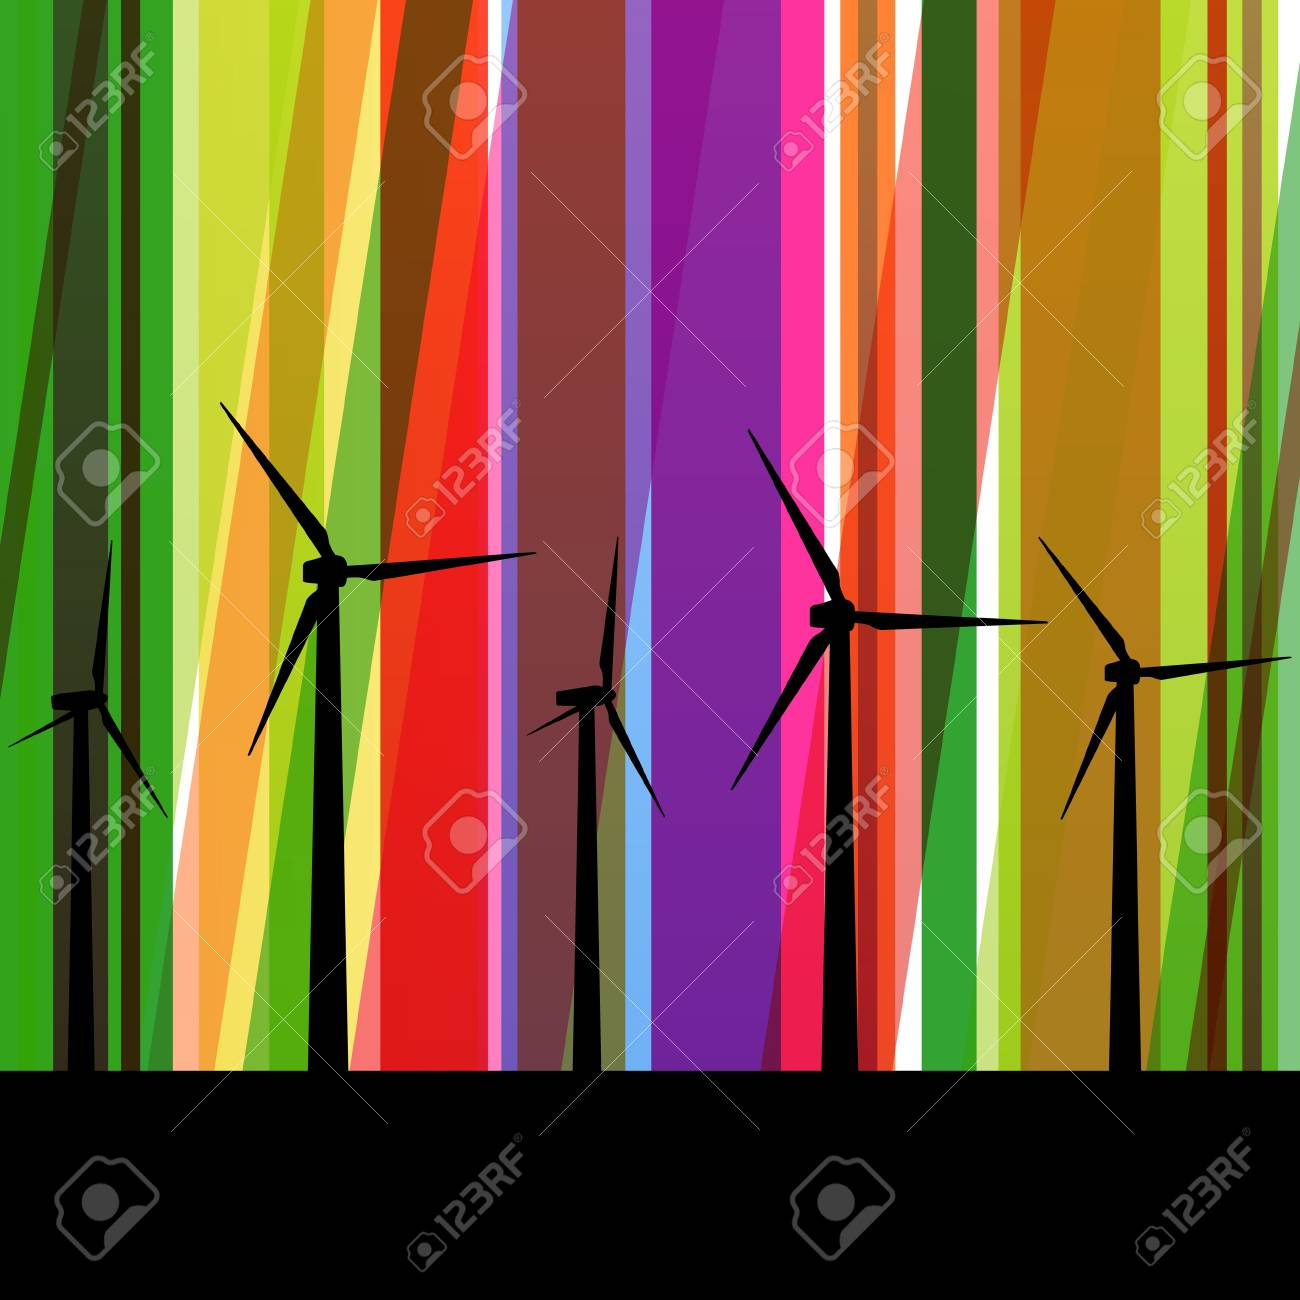 Colorful wind electricity generators abstract lines ecology silhouettes illustration background vector Stock Vector - 17871197